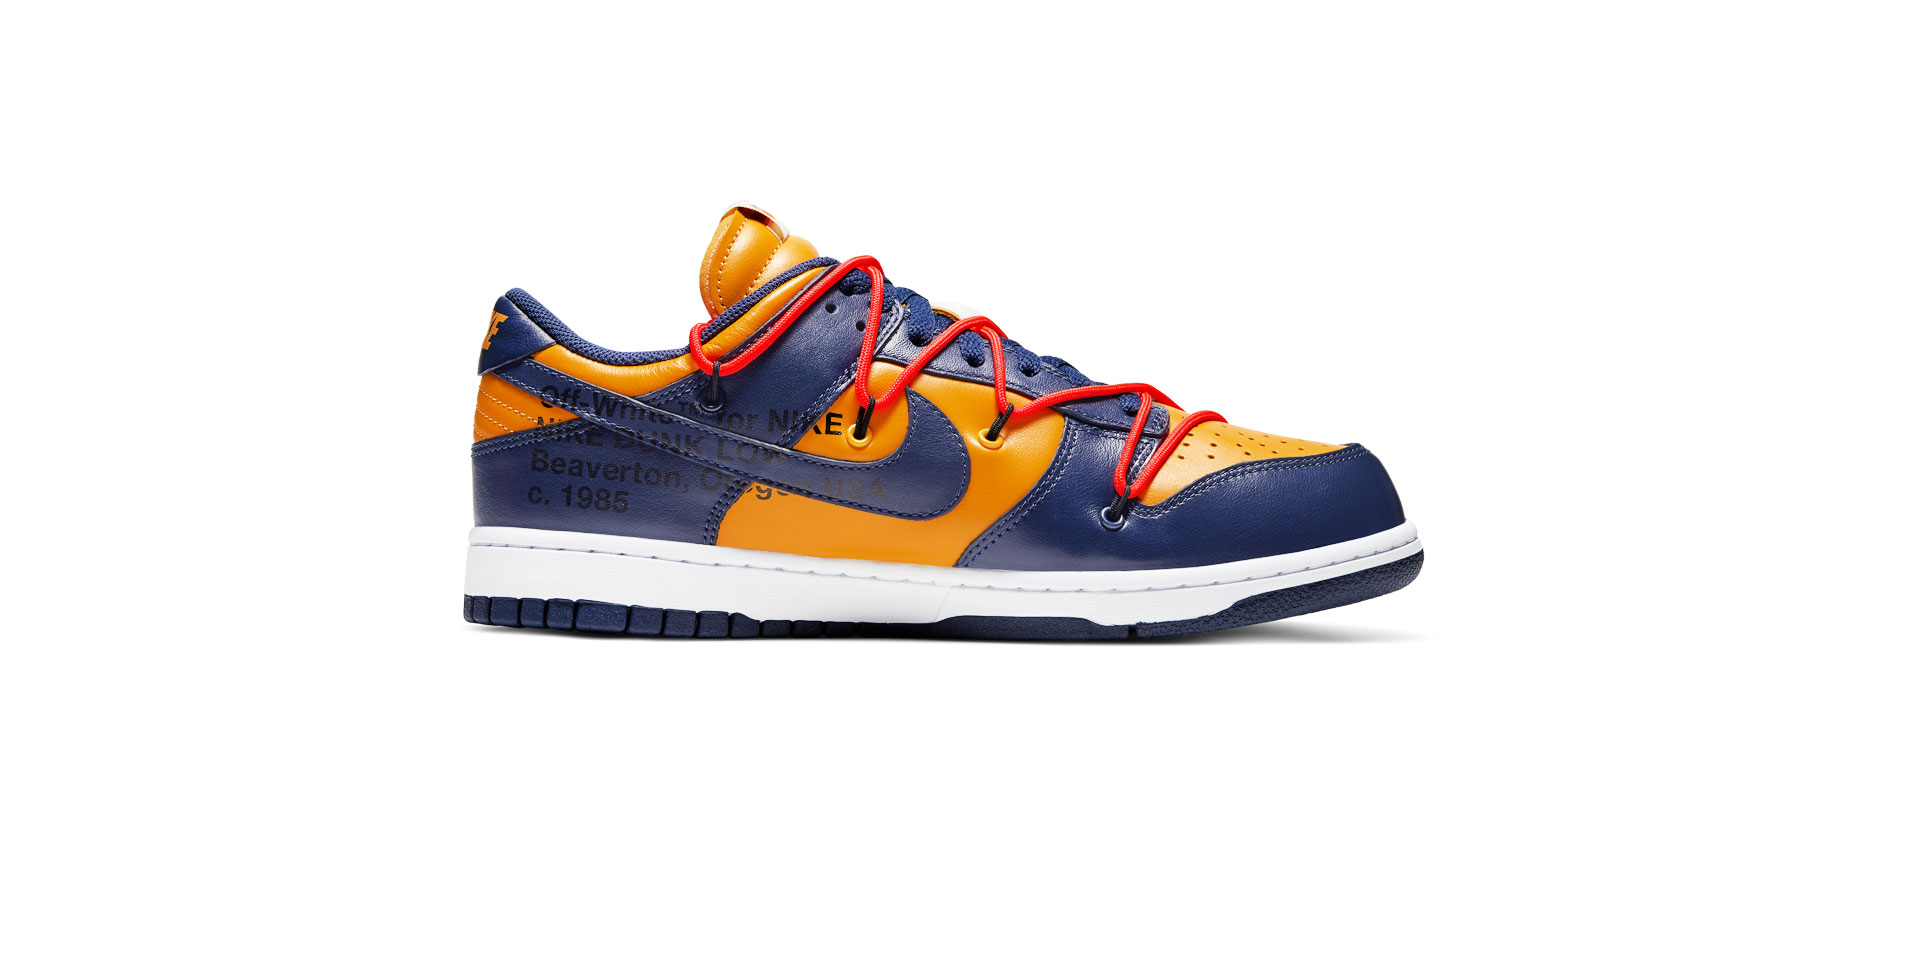 NIKE DUNK LOW LEATHER X OFF-WHITE – UNIVERSITY GOLD/MIDNIGHT NAVY-WHITE